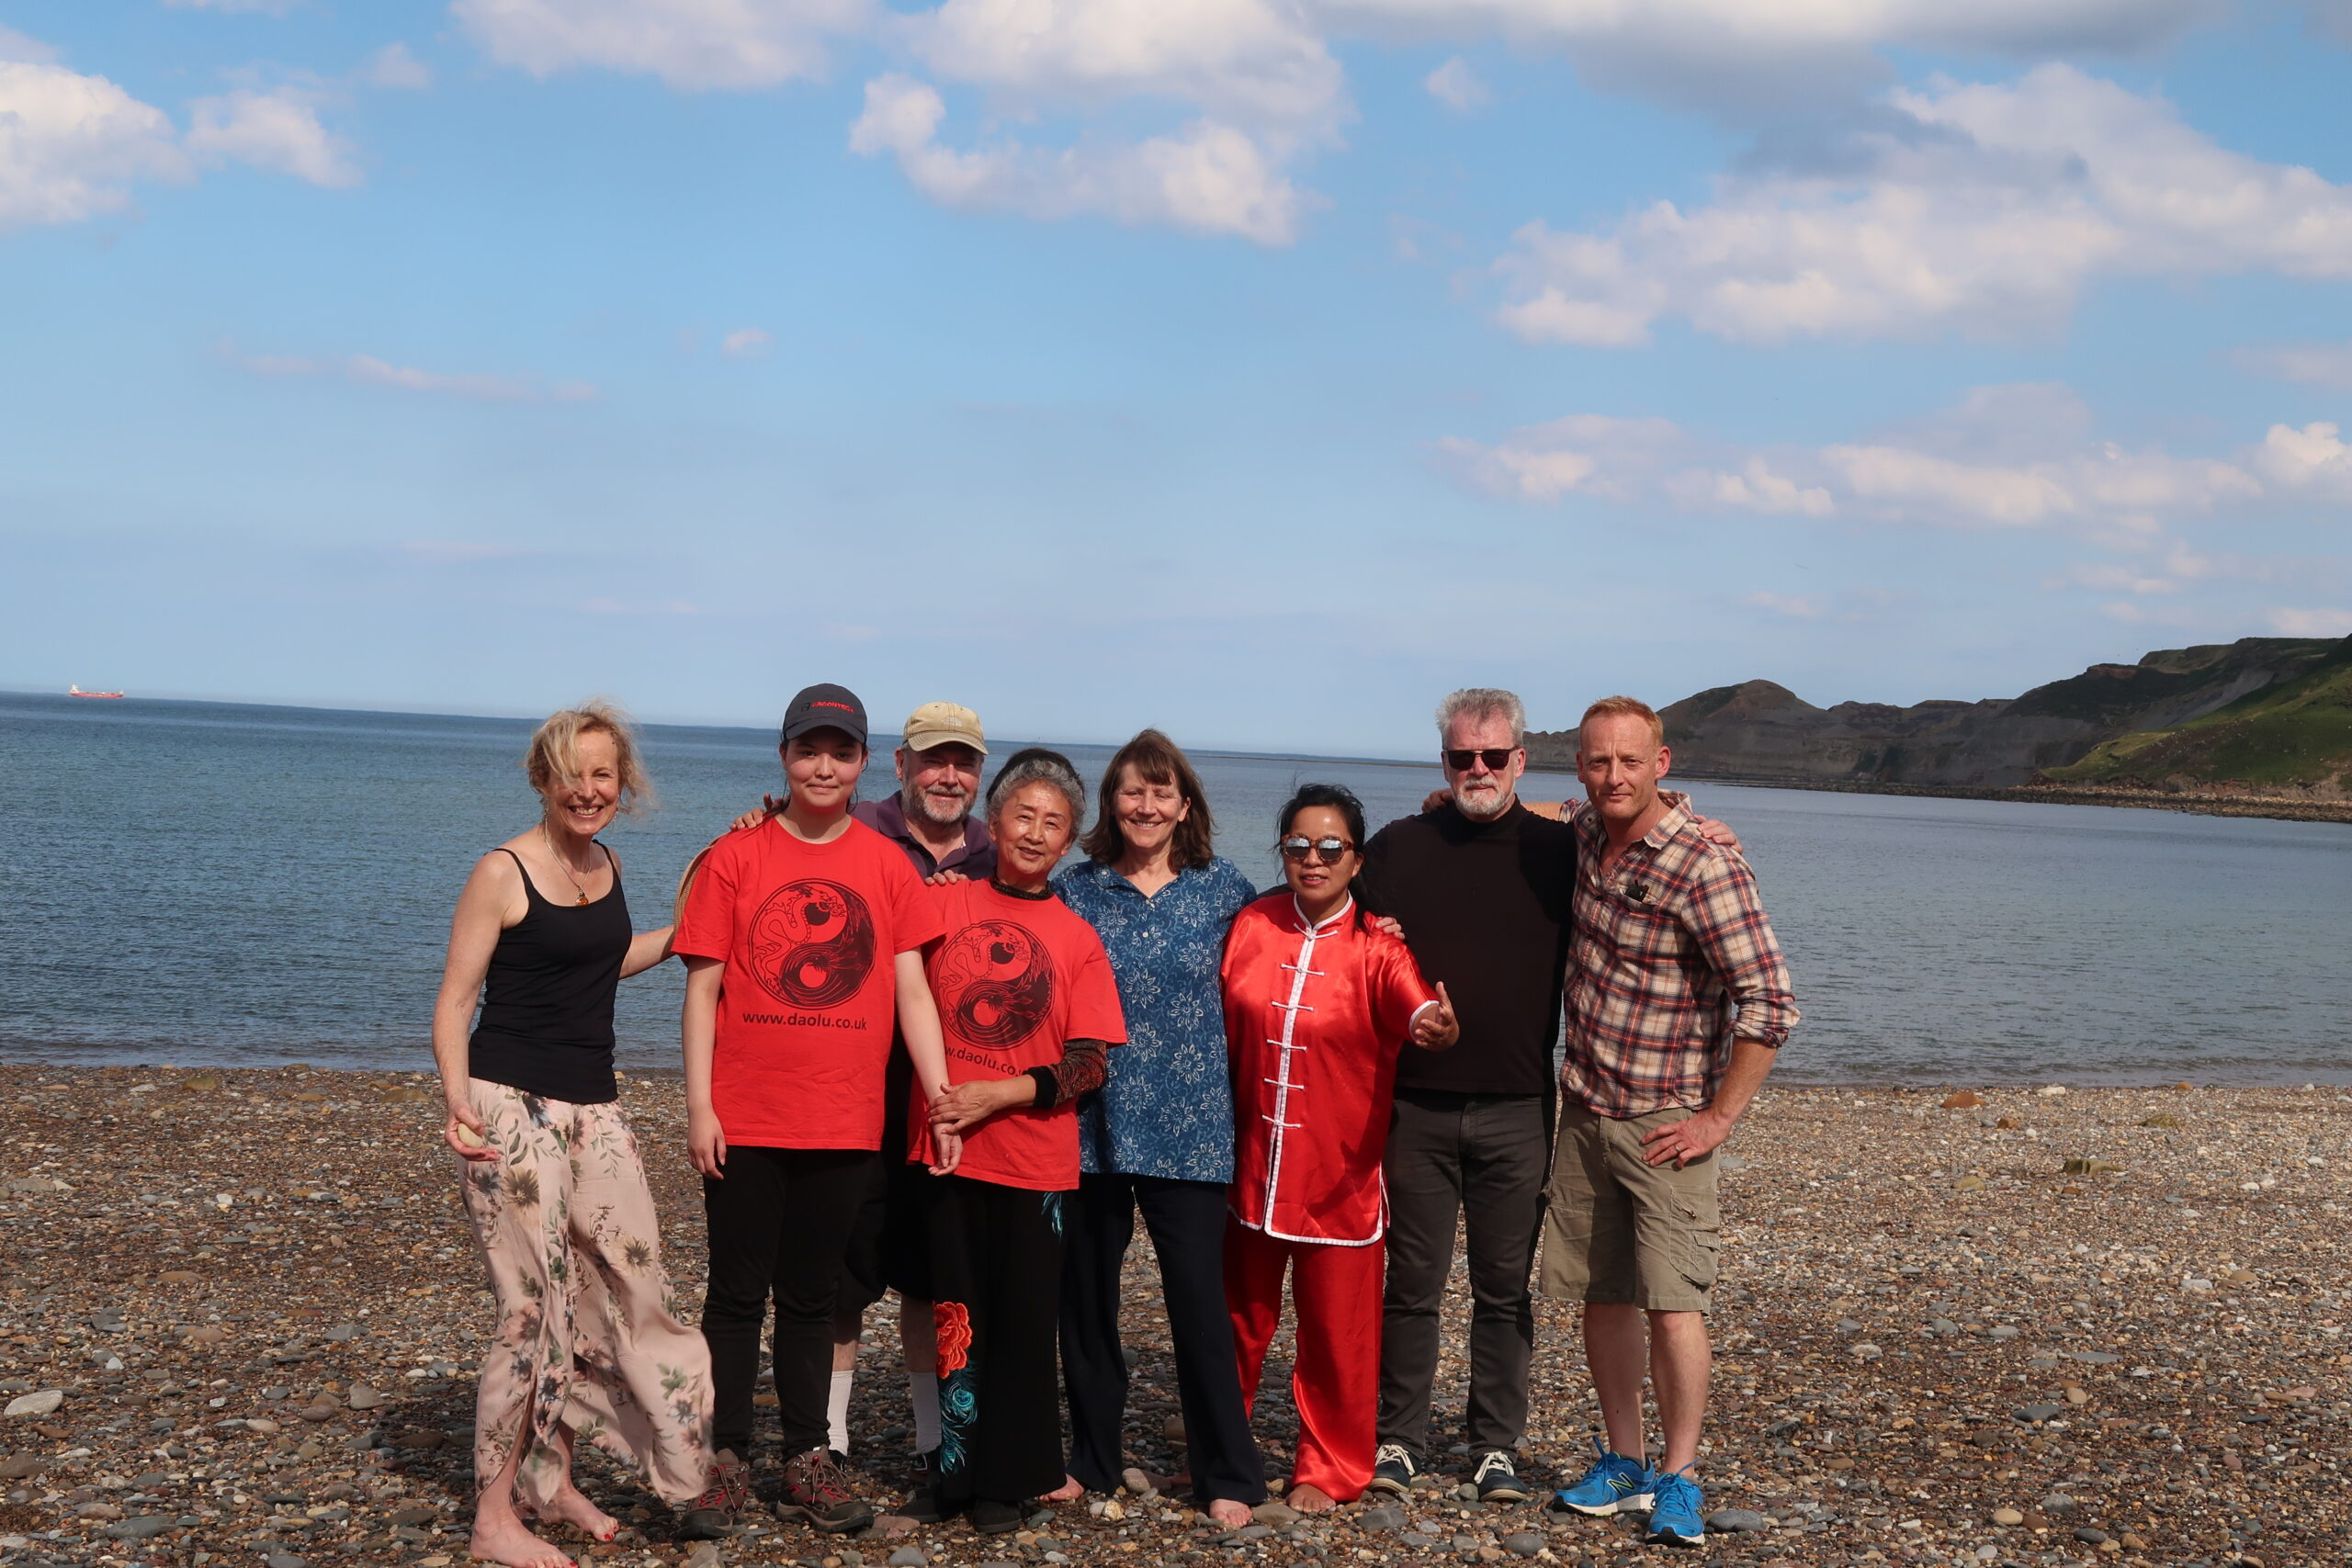 20190830 Group photo on beach with Sara and Marianne in Aug 2019